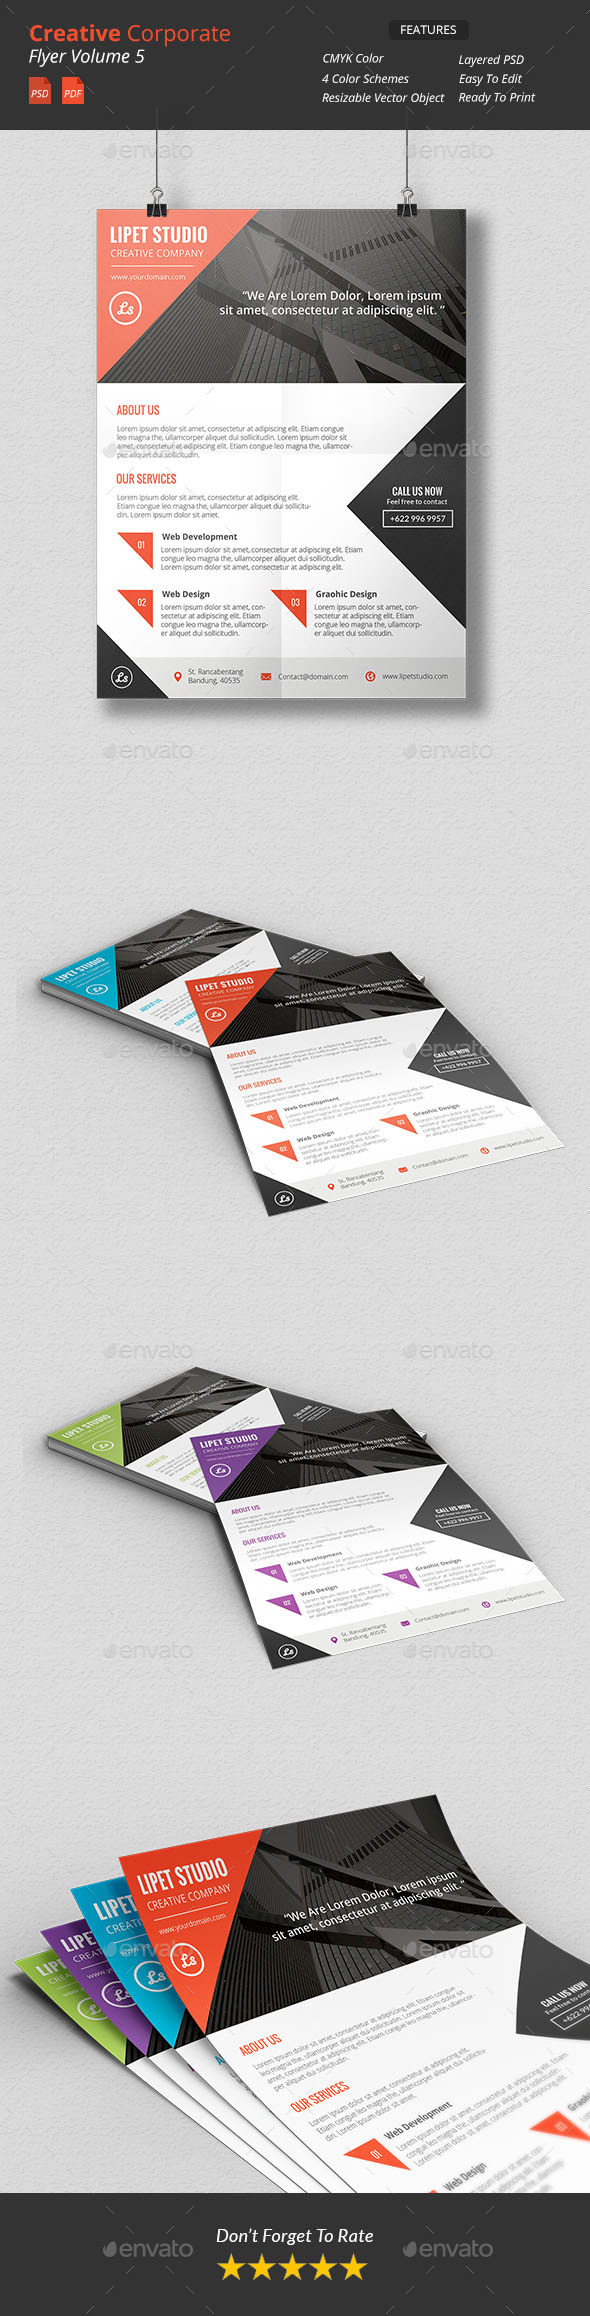 GraphicRiver Creative Corporate Flyer v5 9908150